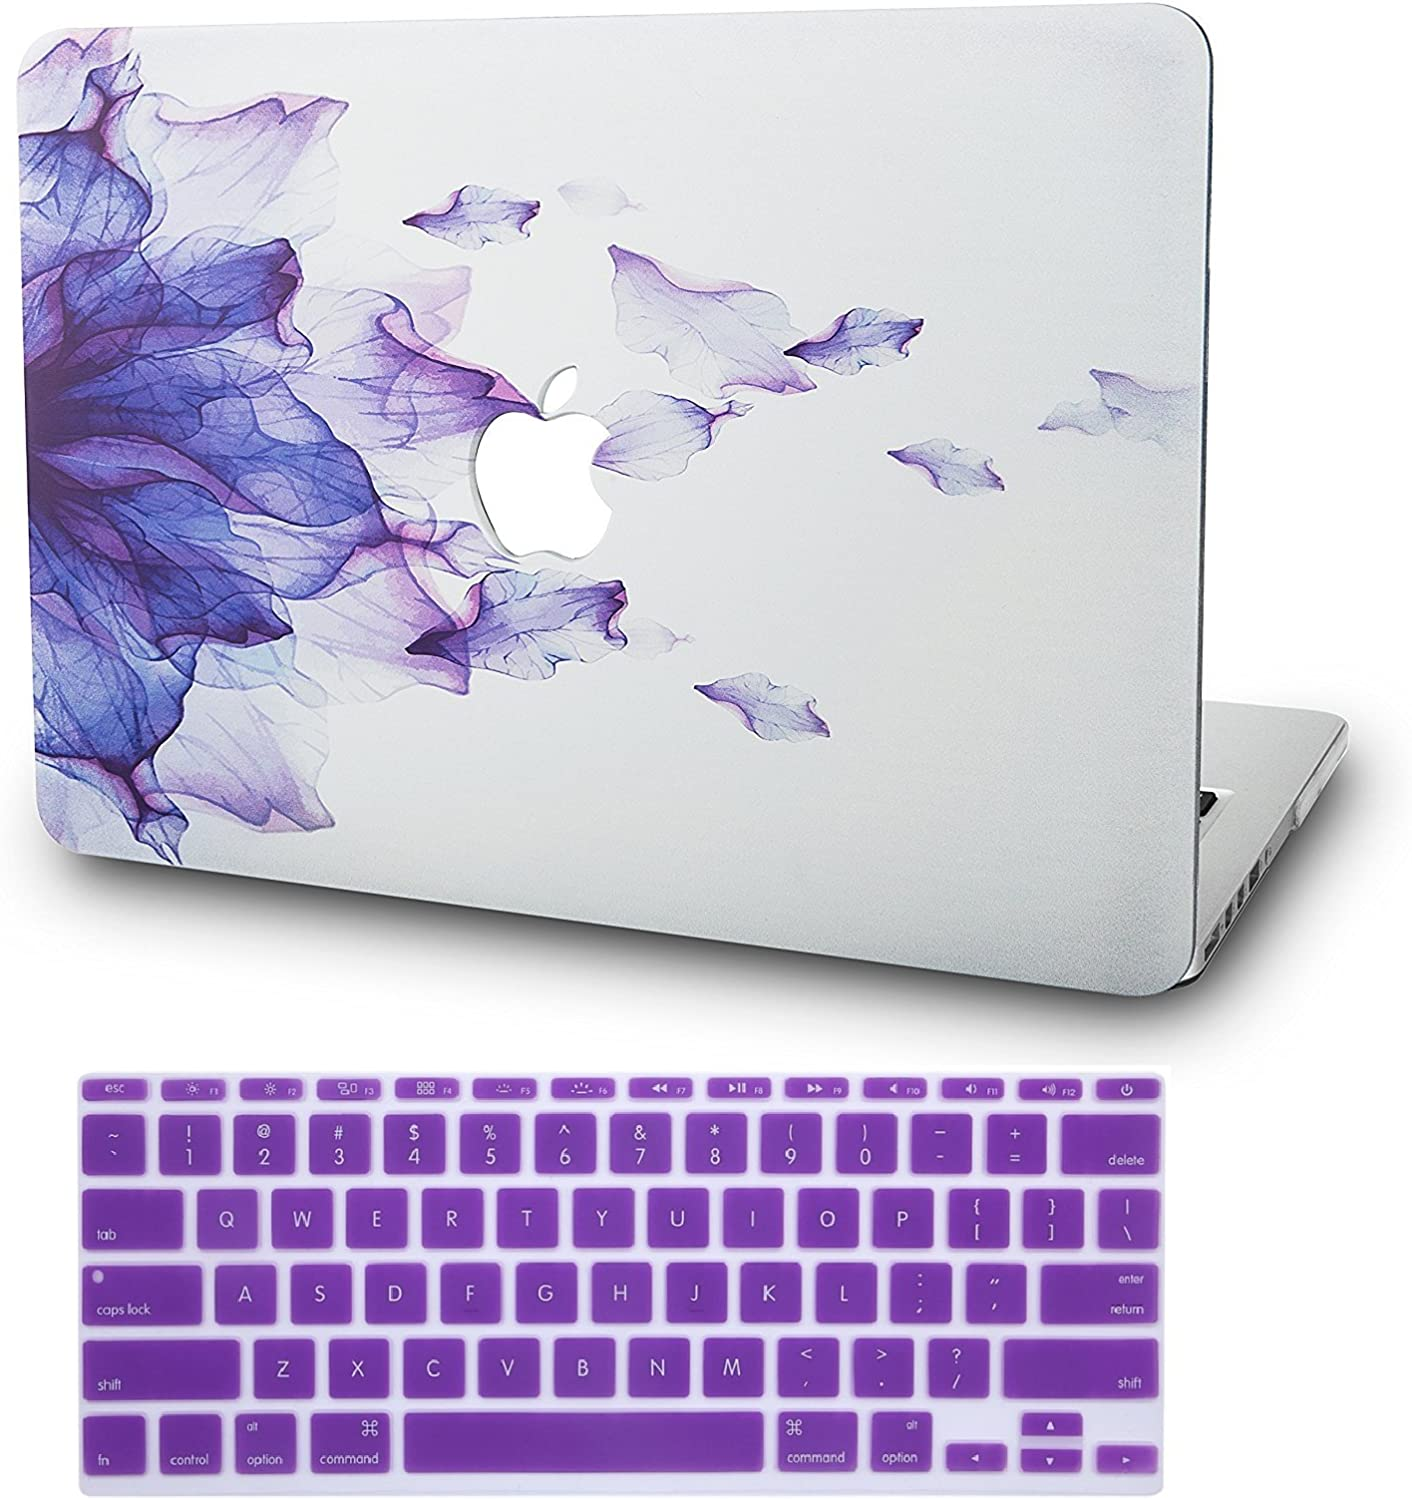 "KECC Laptop Case for MacBook Air 11"" w/Keyboard Cover Plastic Hard Shell Case A1465/A1370 2 in 1 Bundle (Purple Flower)"